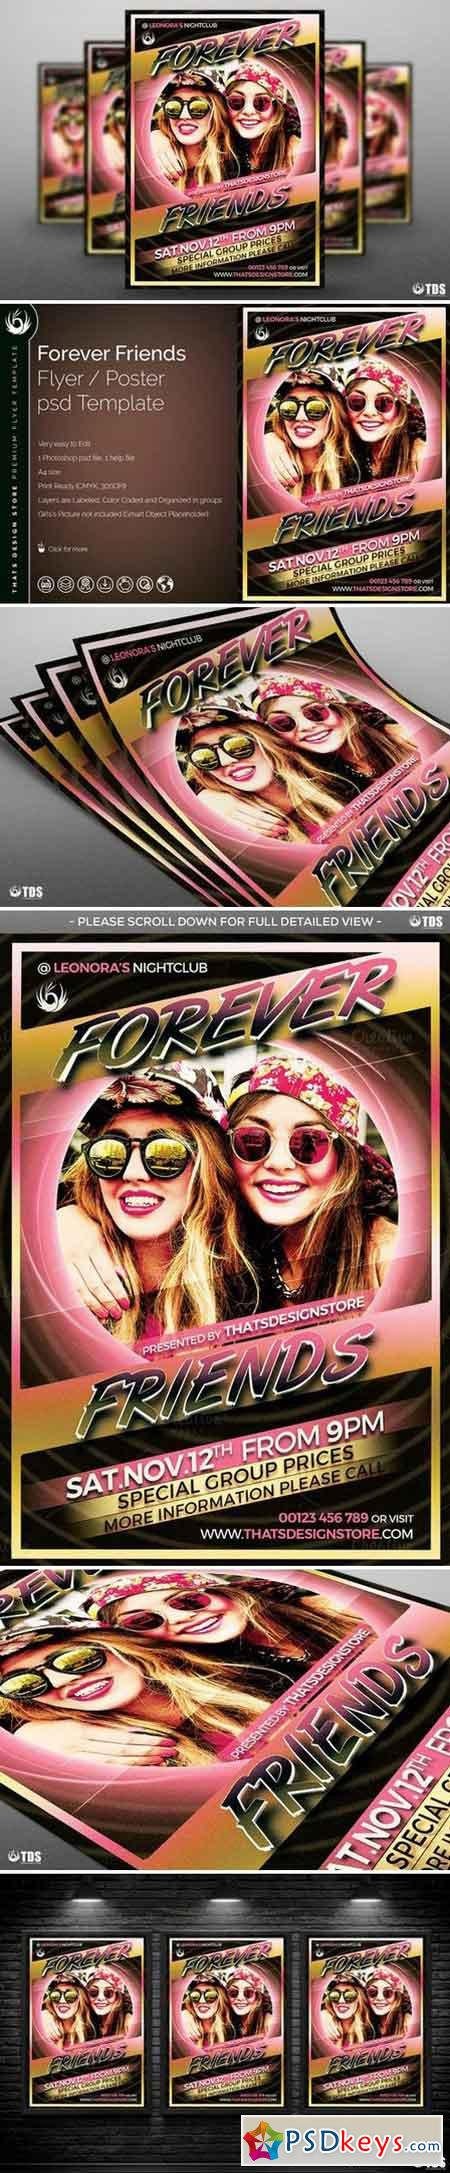 Forever Friends Flyer Template 792498